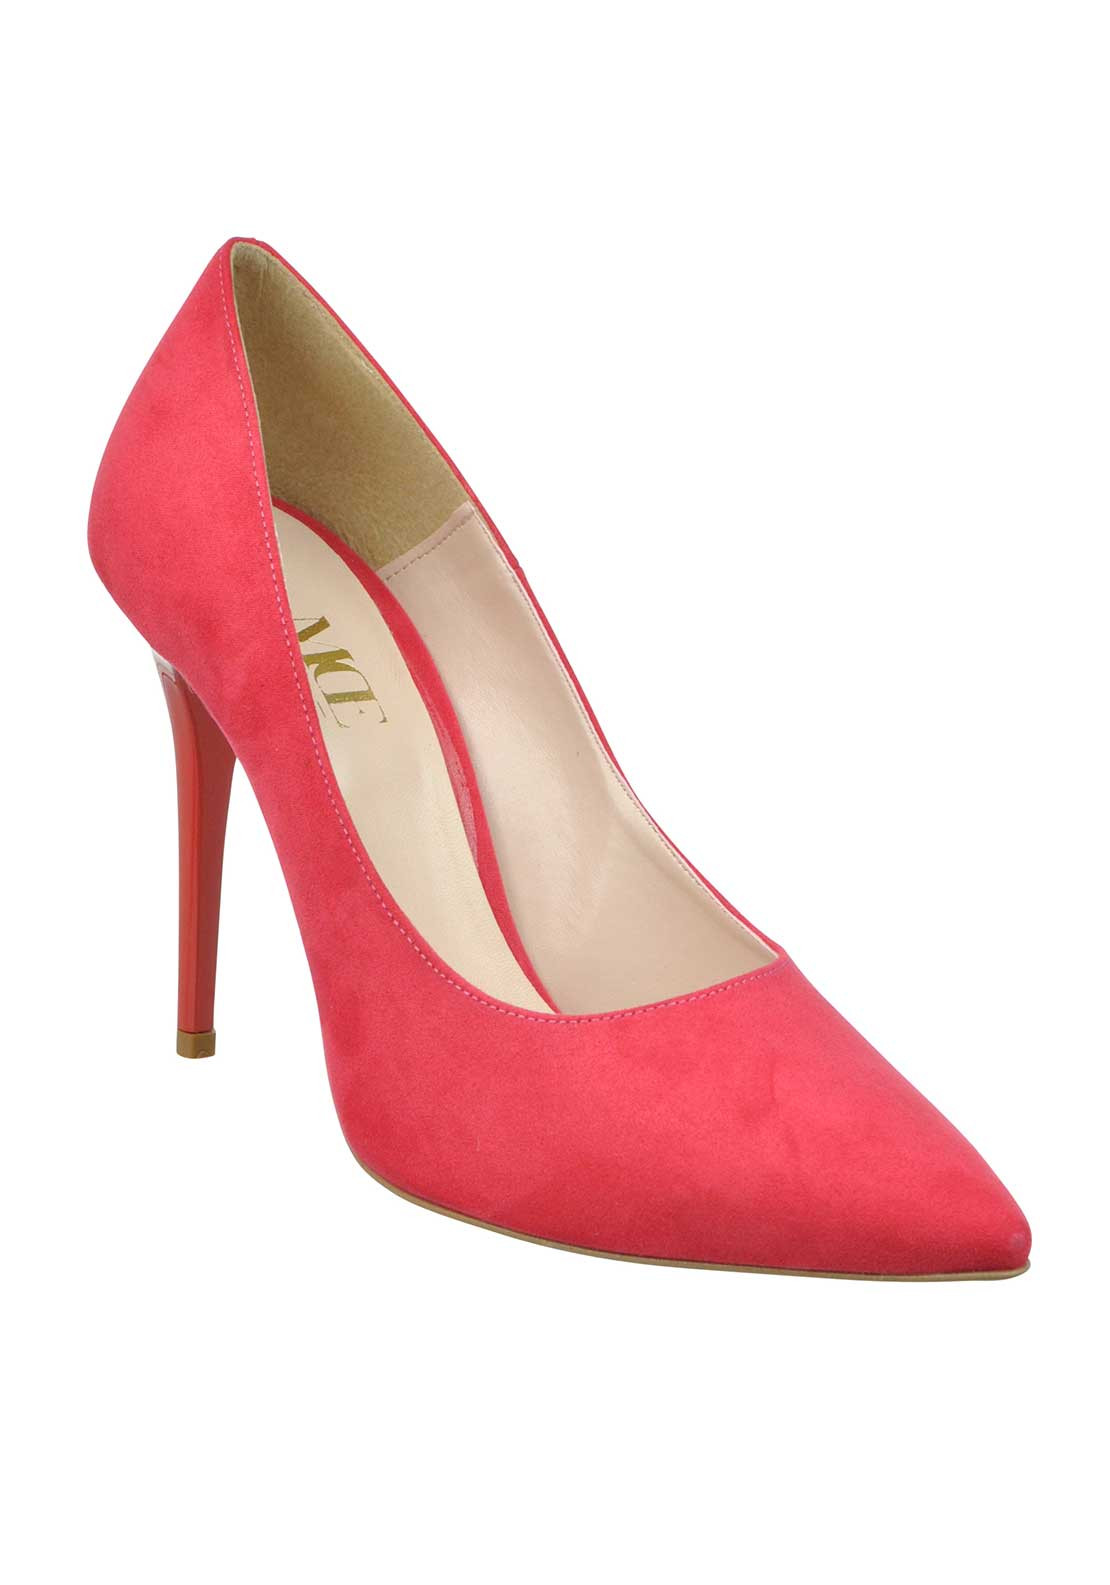 McElhinney's Faux Suede Pointed Toe Heeled Shoes, Pink